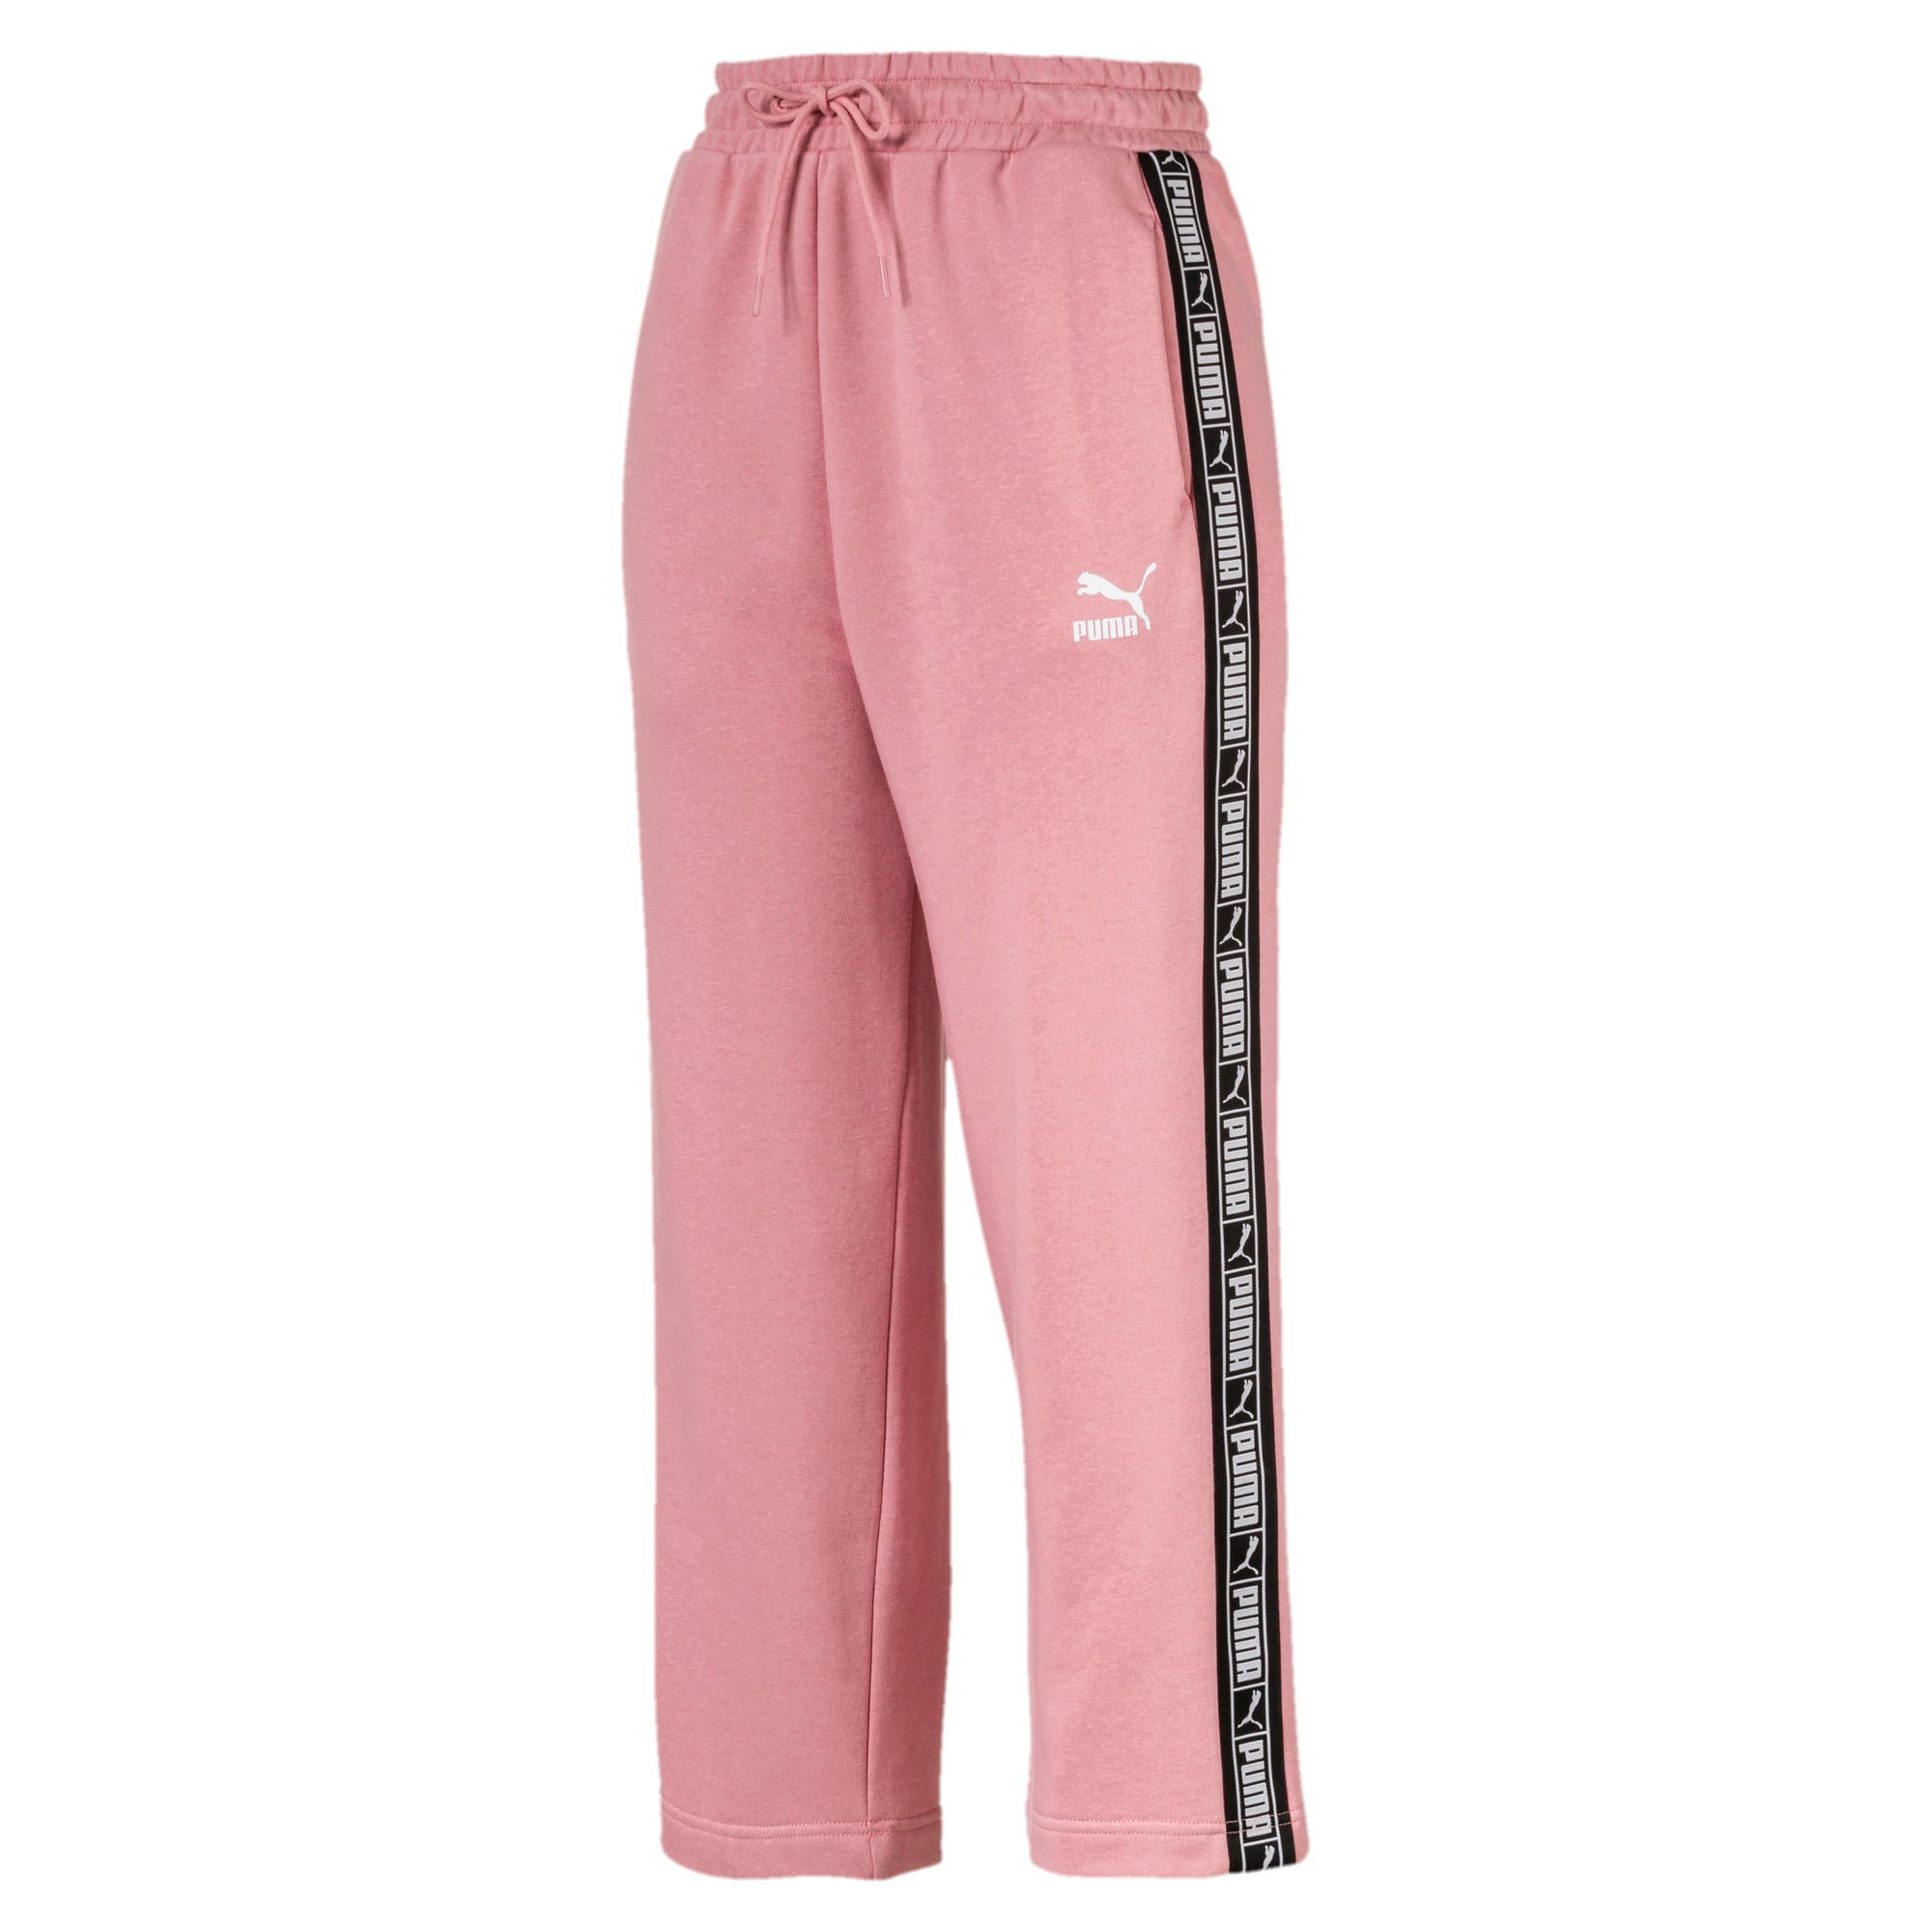 Thumbnail 1 of Classics Women's Track Pants, Bridal Rose, medium